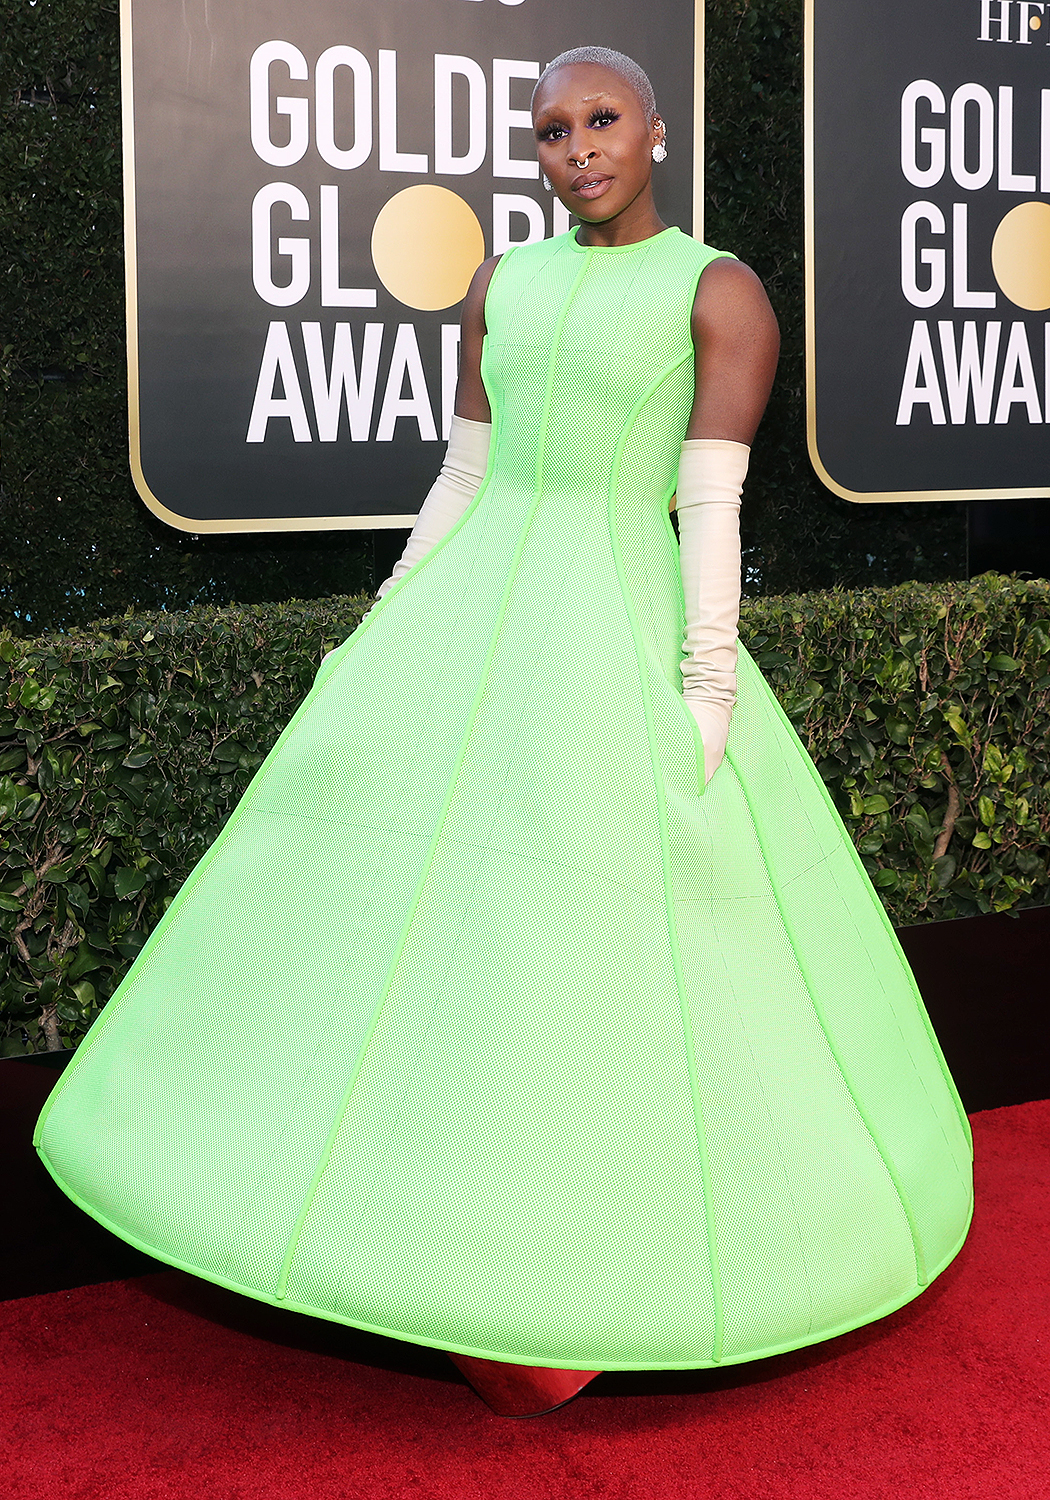 Cynthia Erivo attends the 78th Annual Golden Globe Awards held at The Beverly Hilton and broadcast on February 28, 2021 i